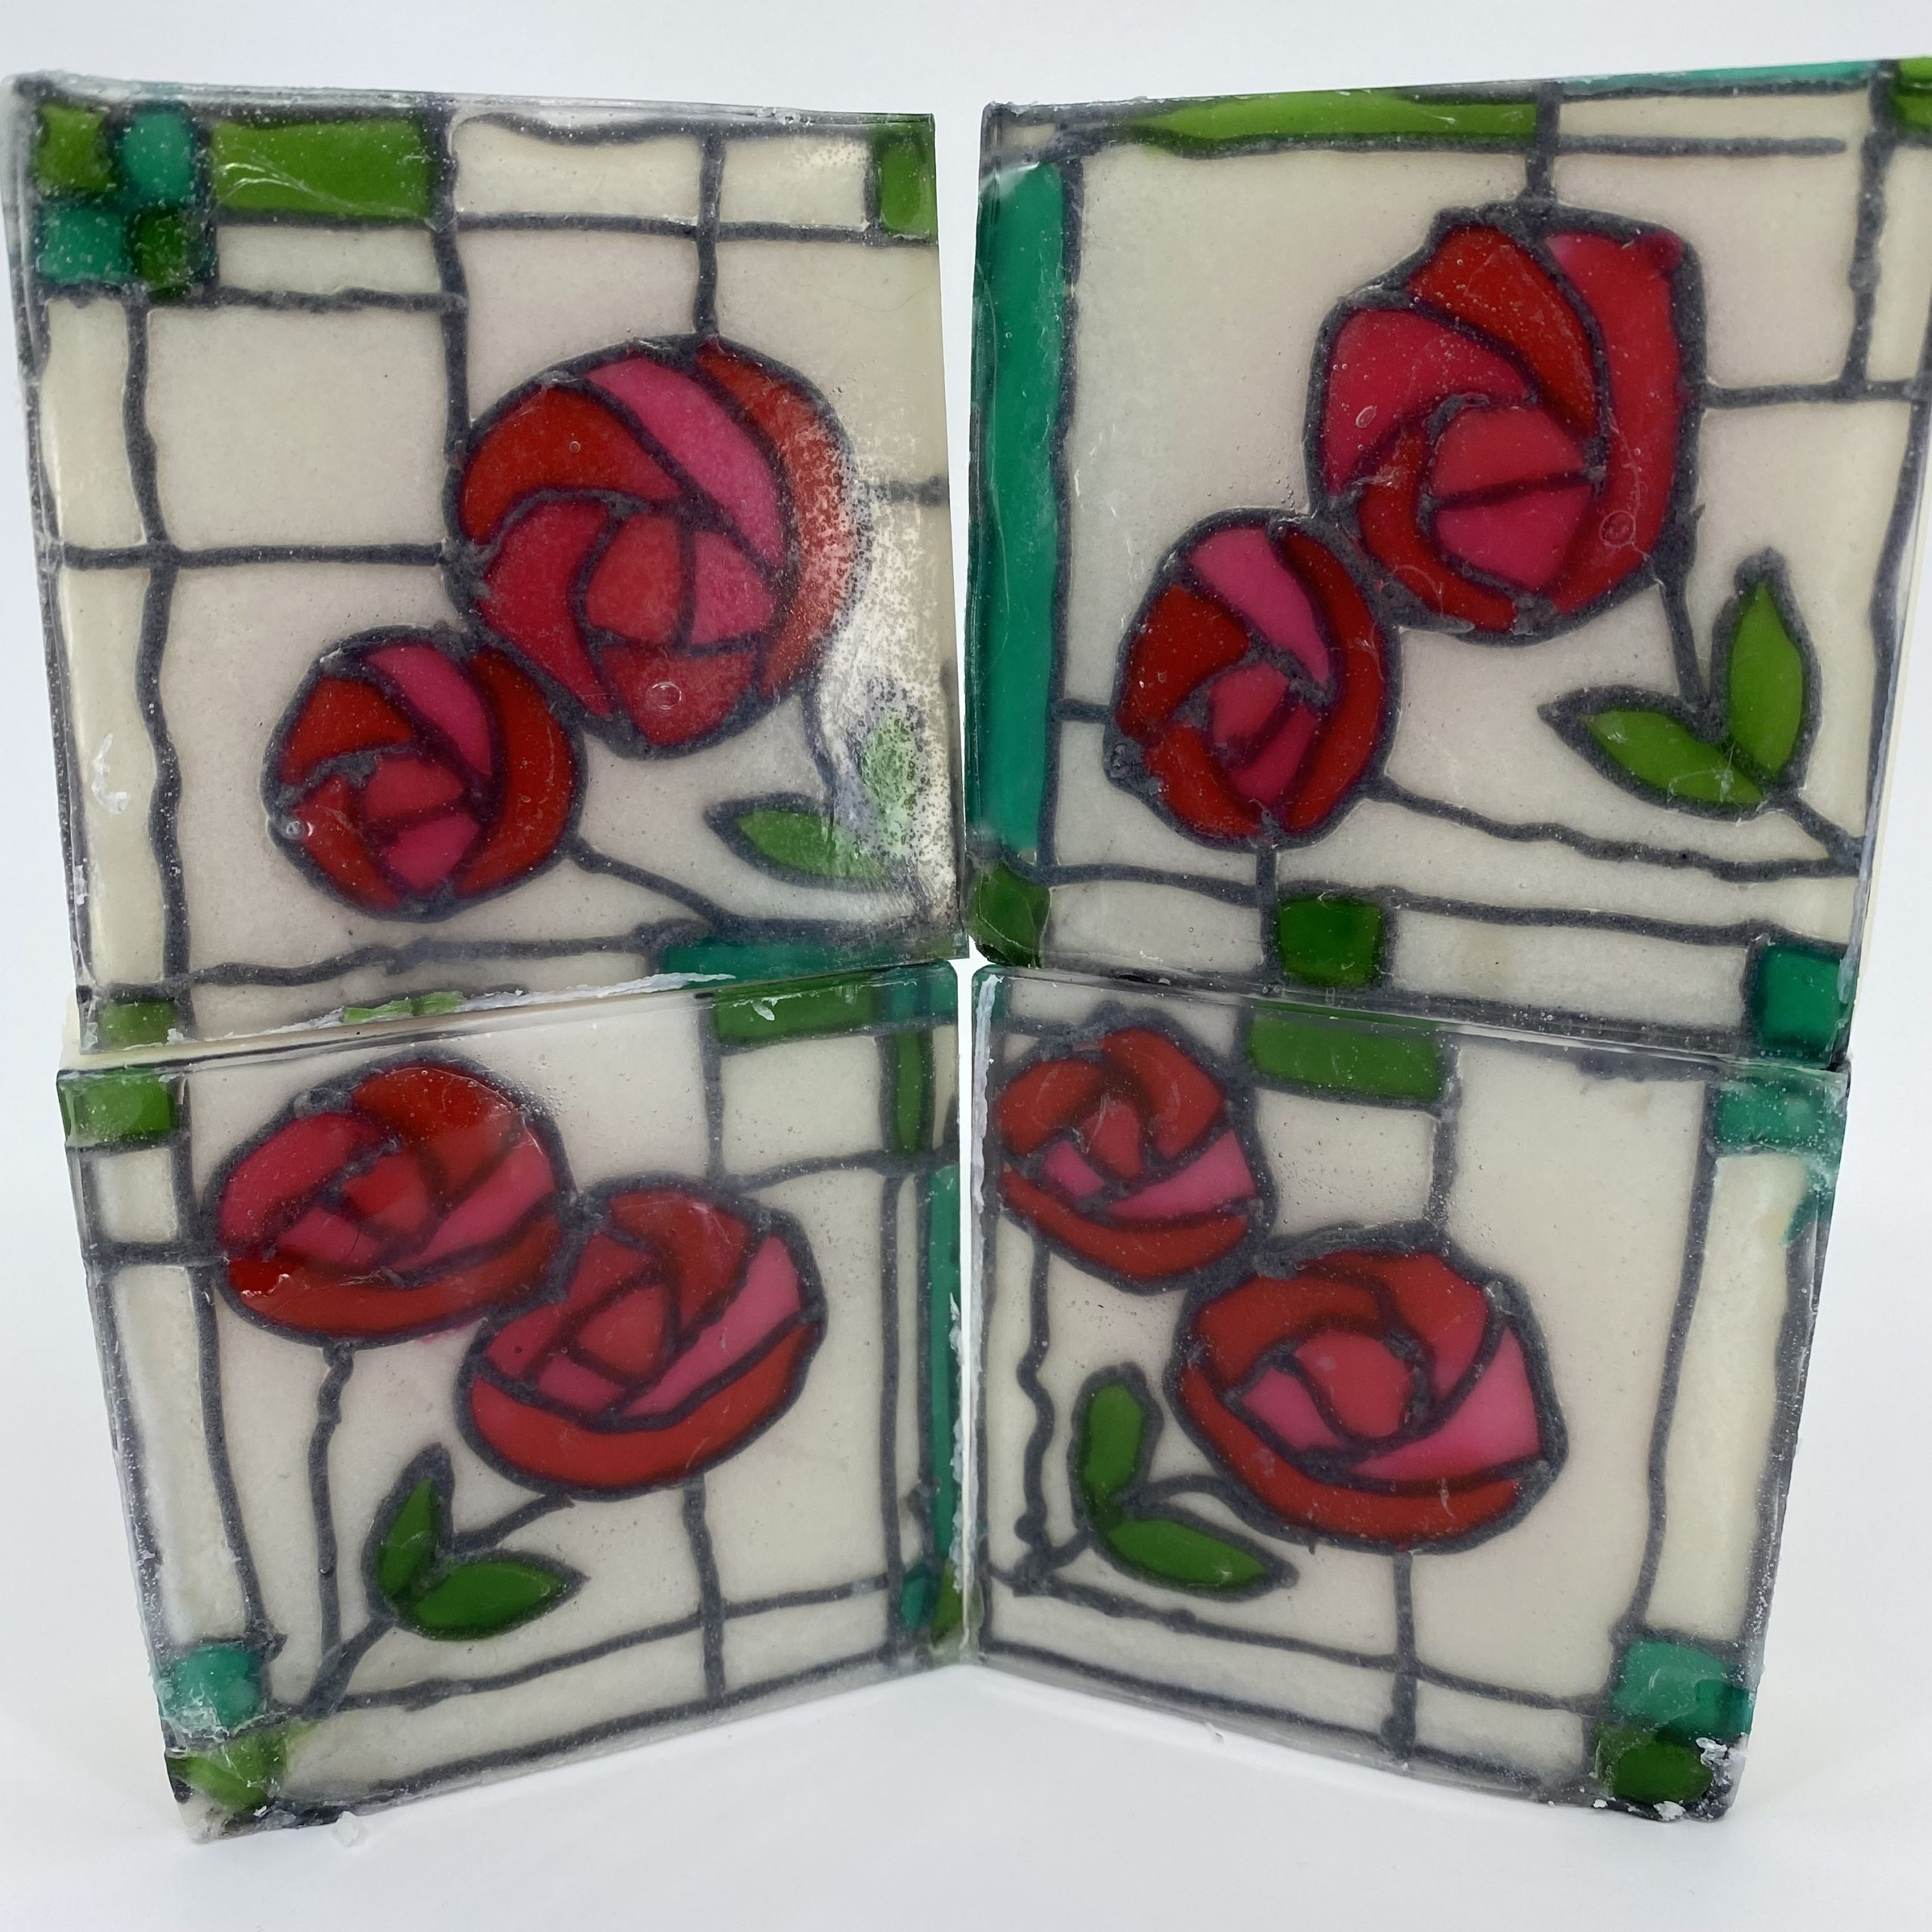 wooded rose crm inspired